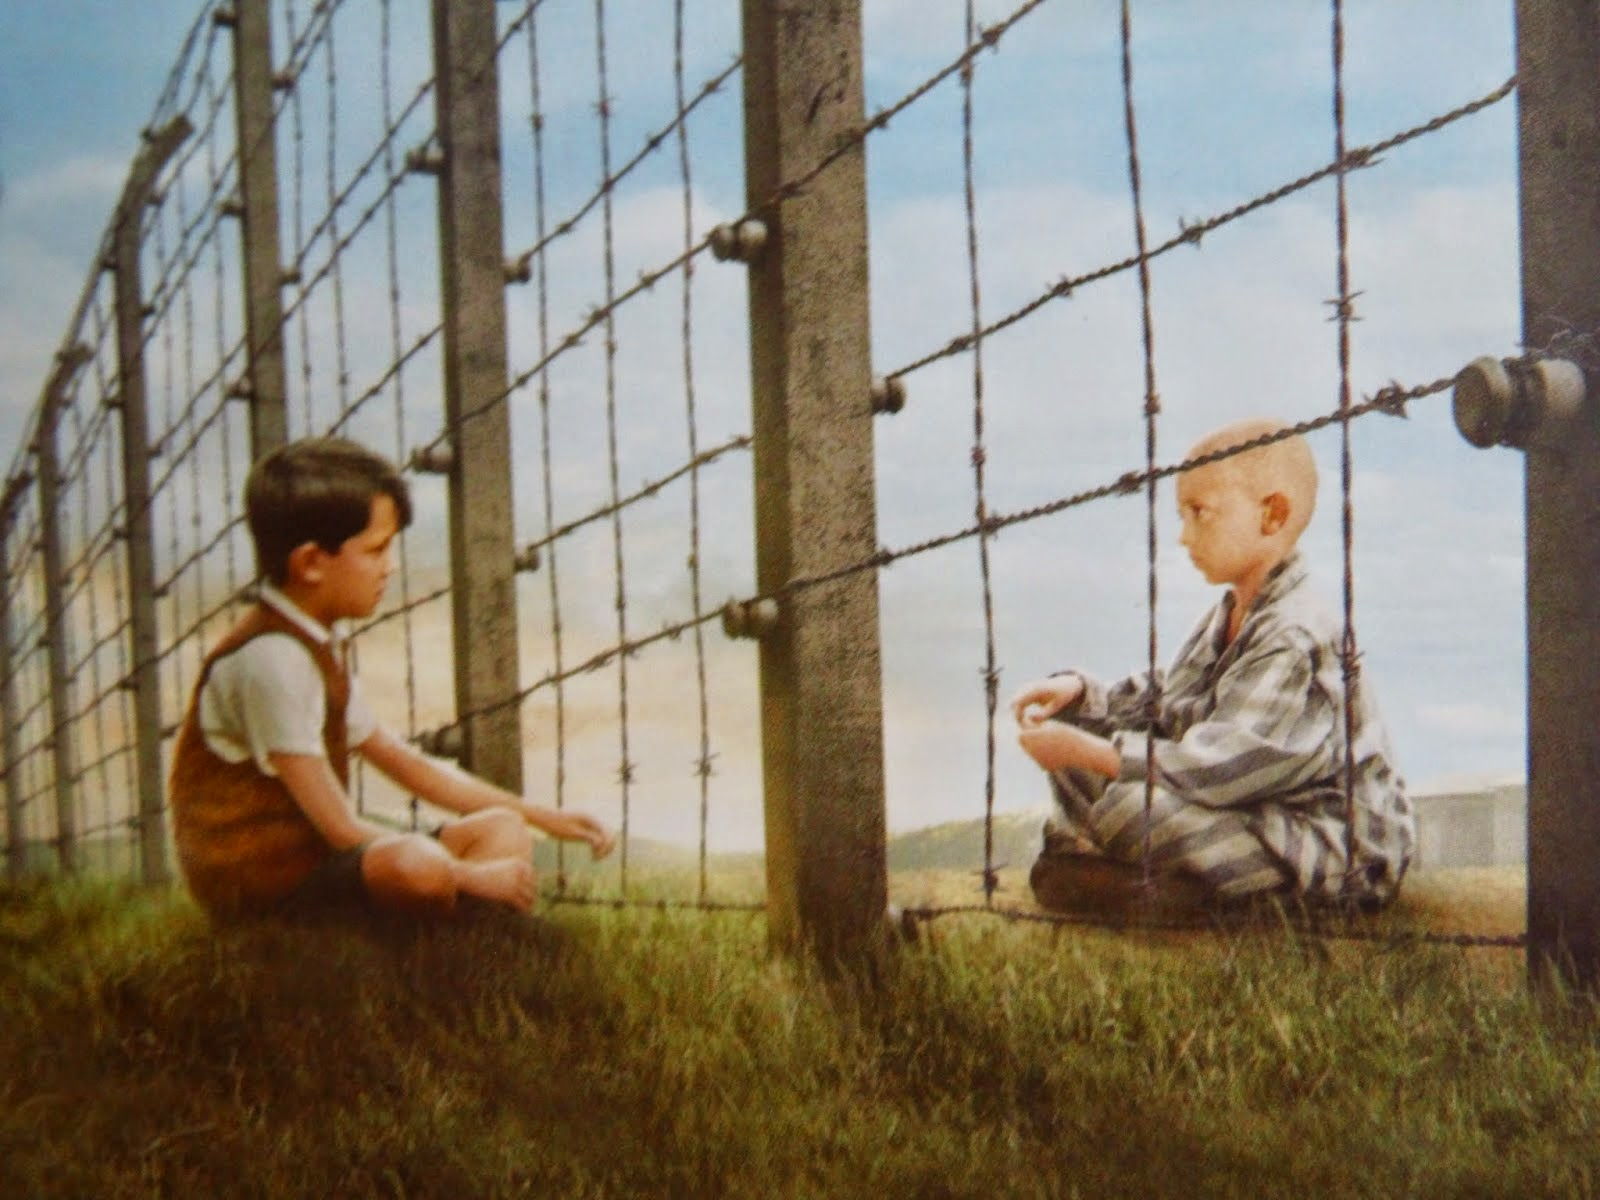 boy in the striped pajamas essay the boy in the striped pyjamas personalised writing gcse edwige gross the boy in the striped